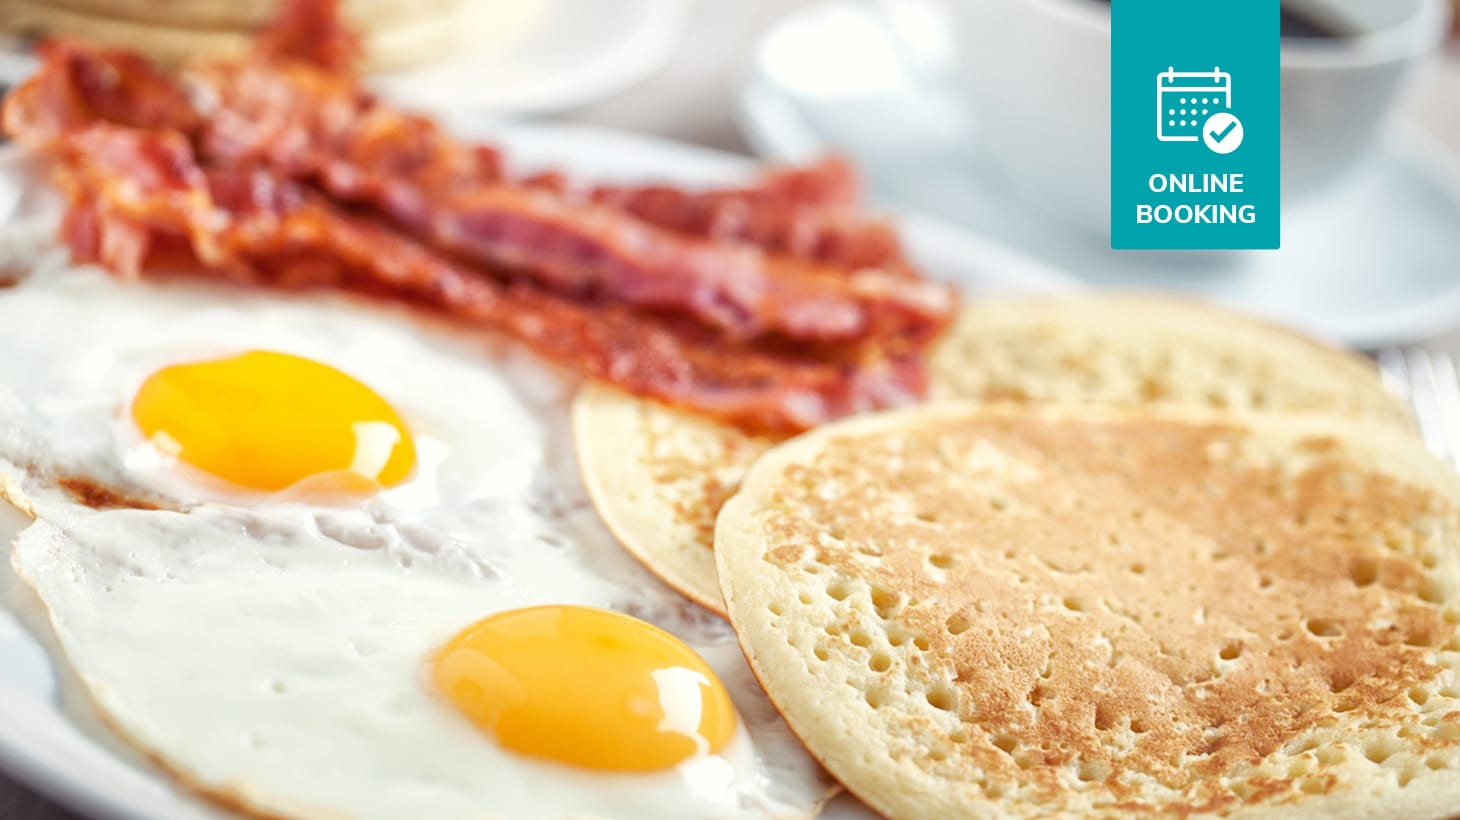 All-You-Can-Eat Buffet Breakfast at a CBD Hotel Rendezvous Studio Hotel Perth Central Perth